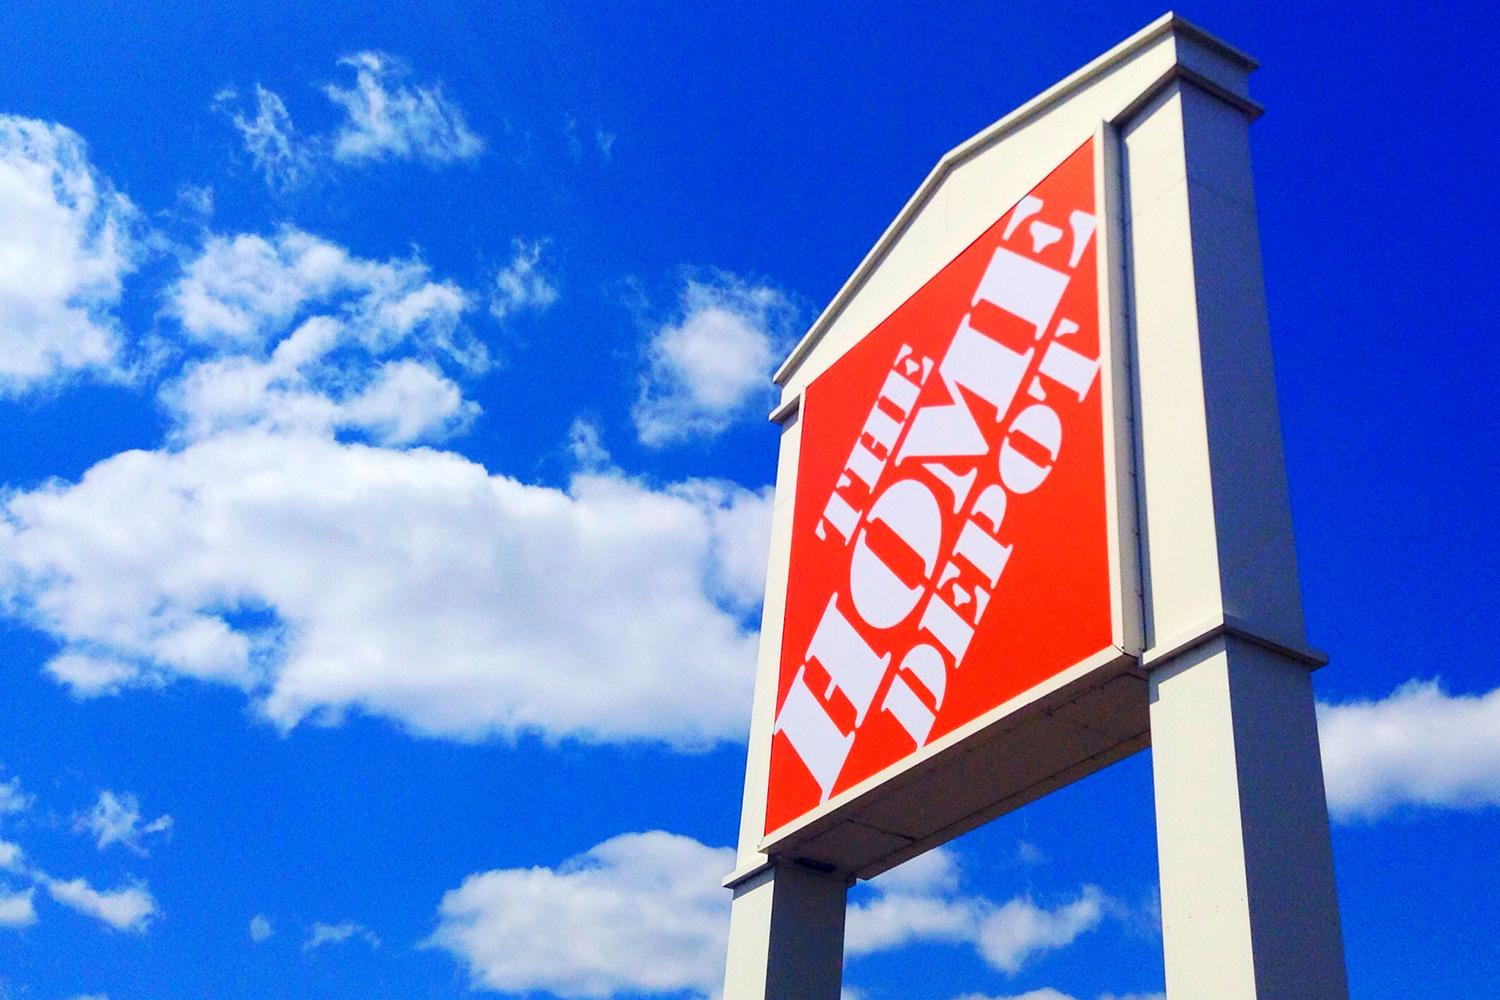 home depot security breach settlement